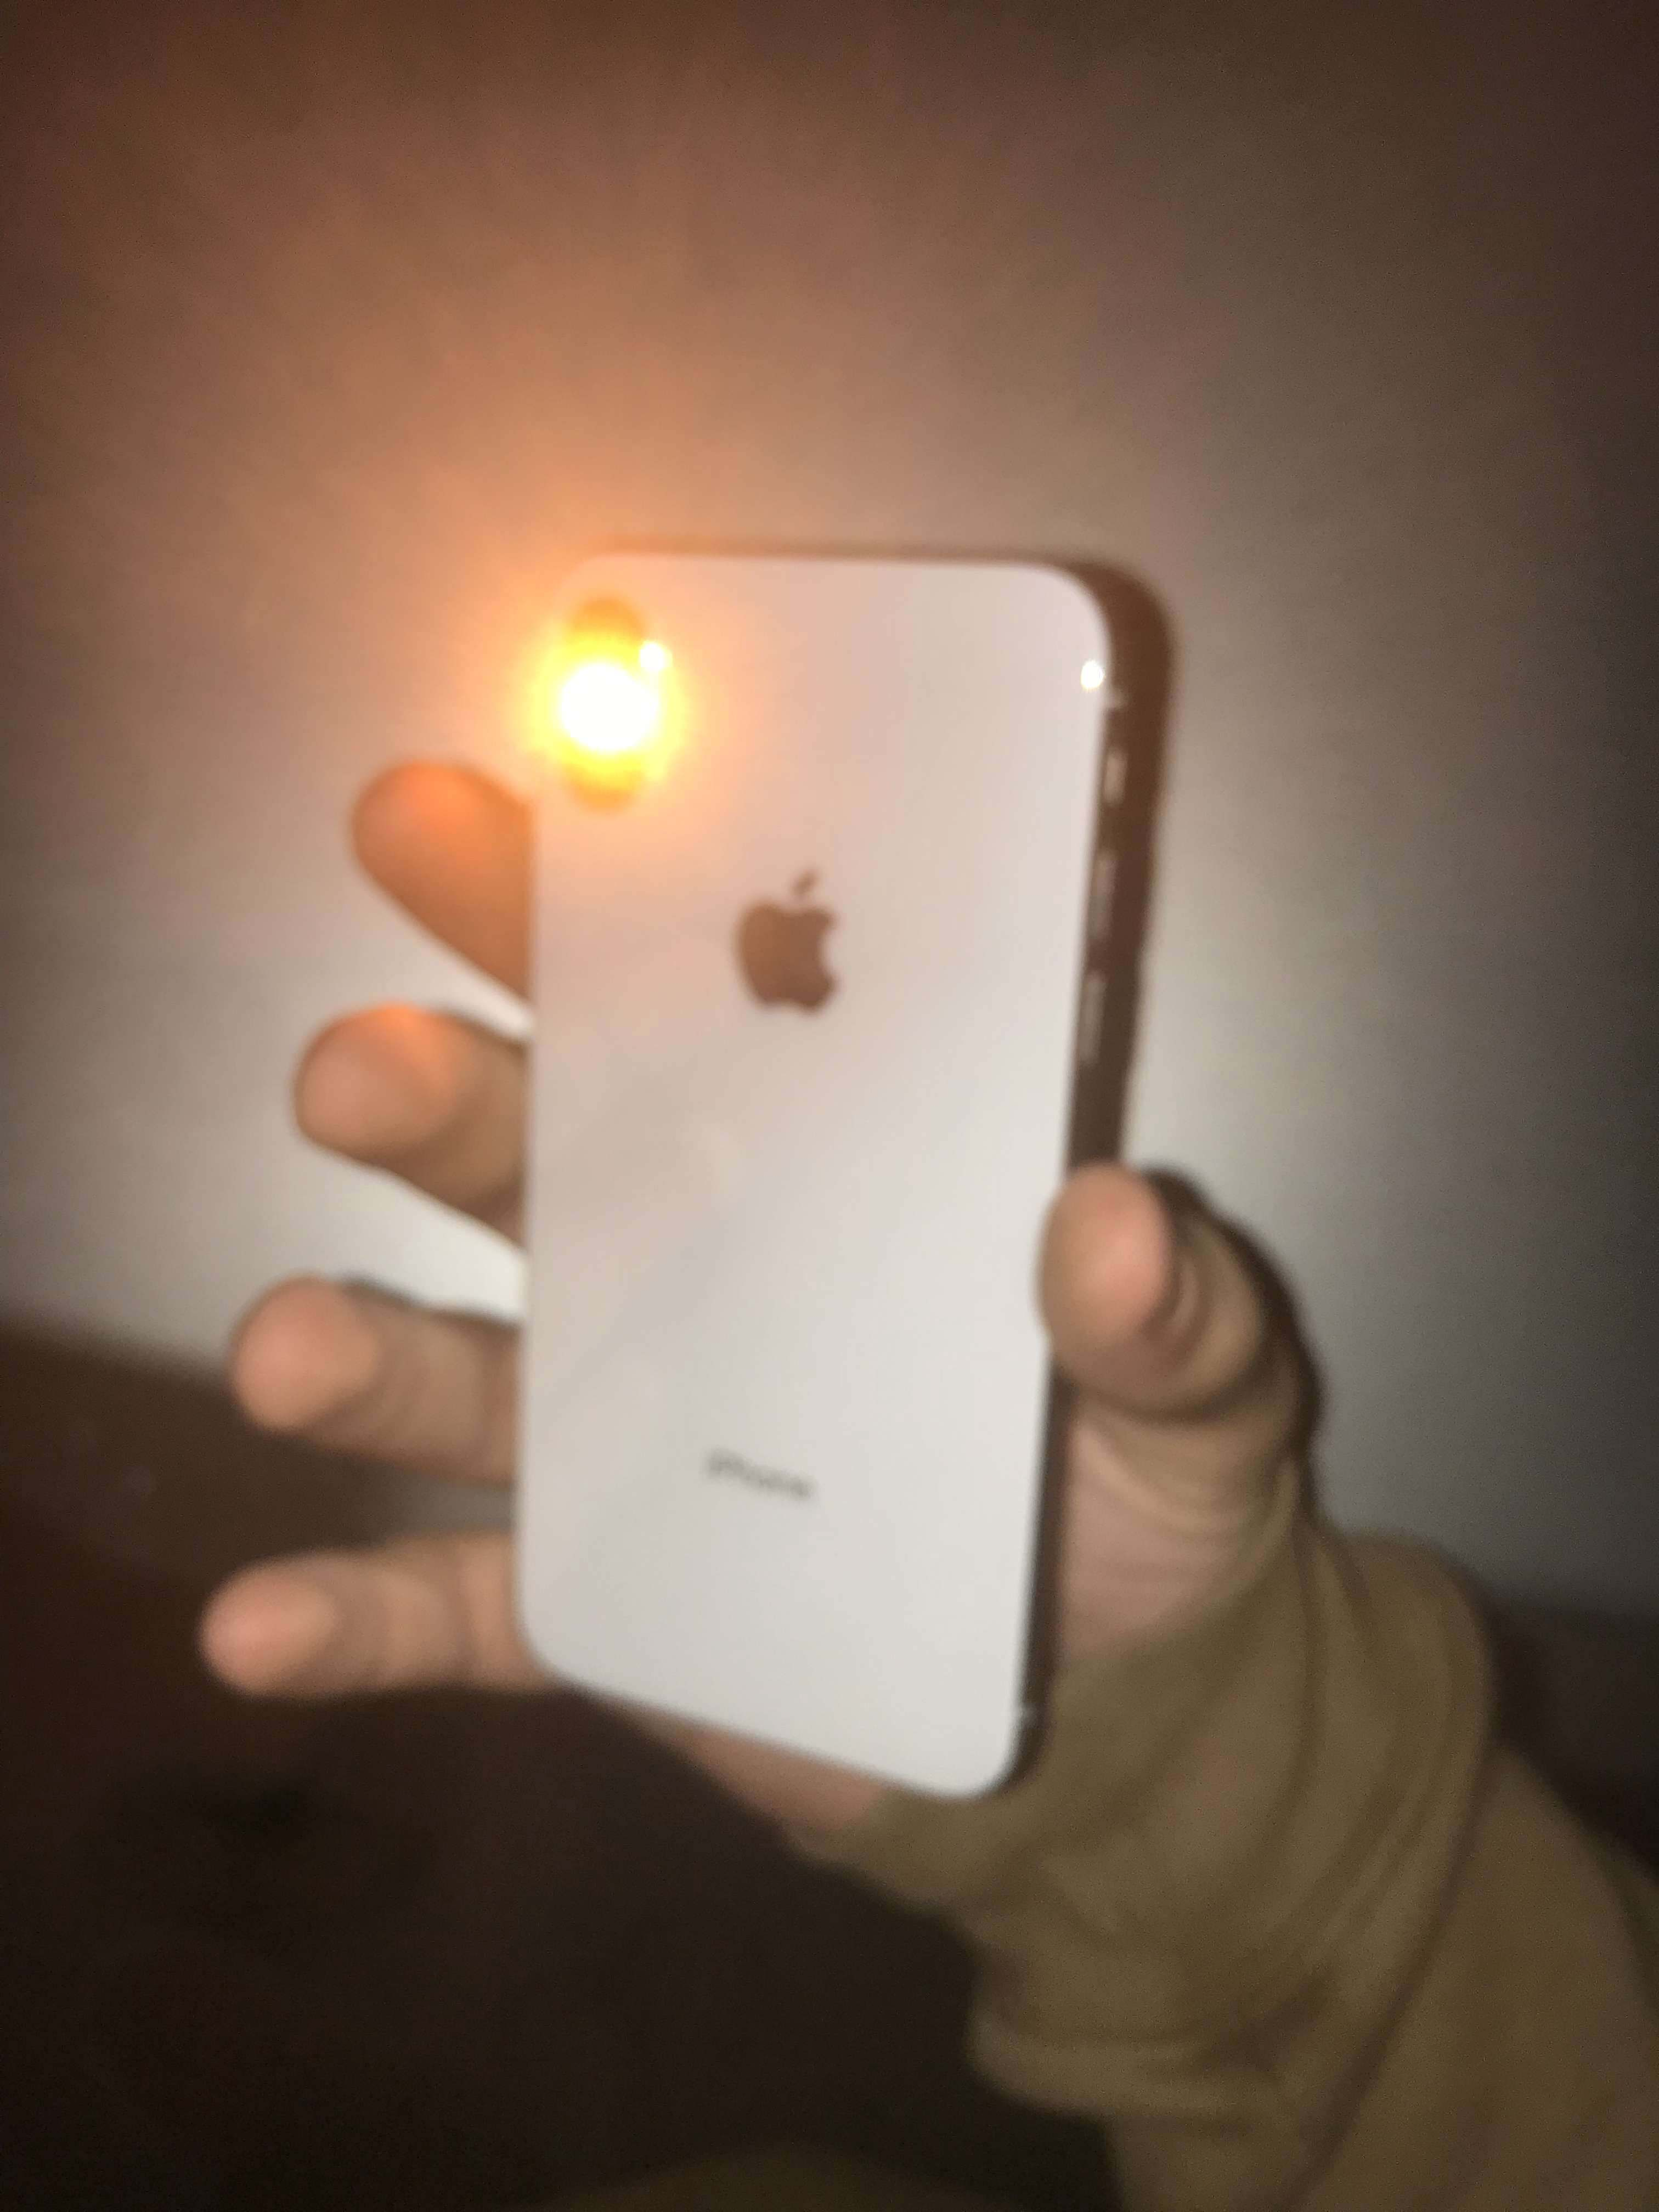 A number of iPhone X and XS owners have problems with their smartphones' flashlights